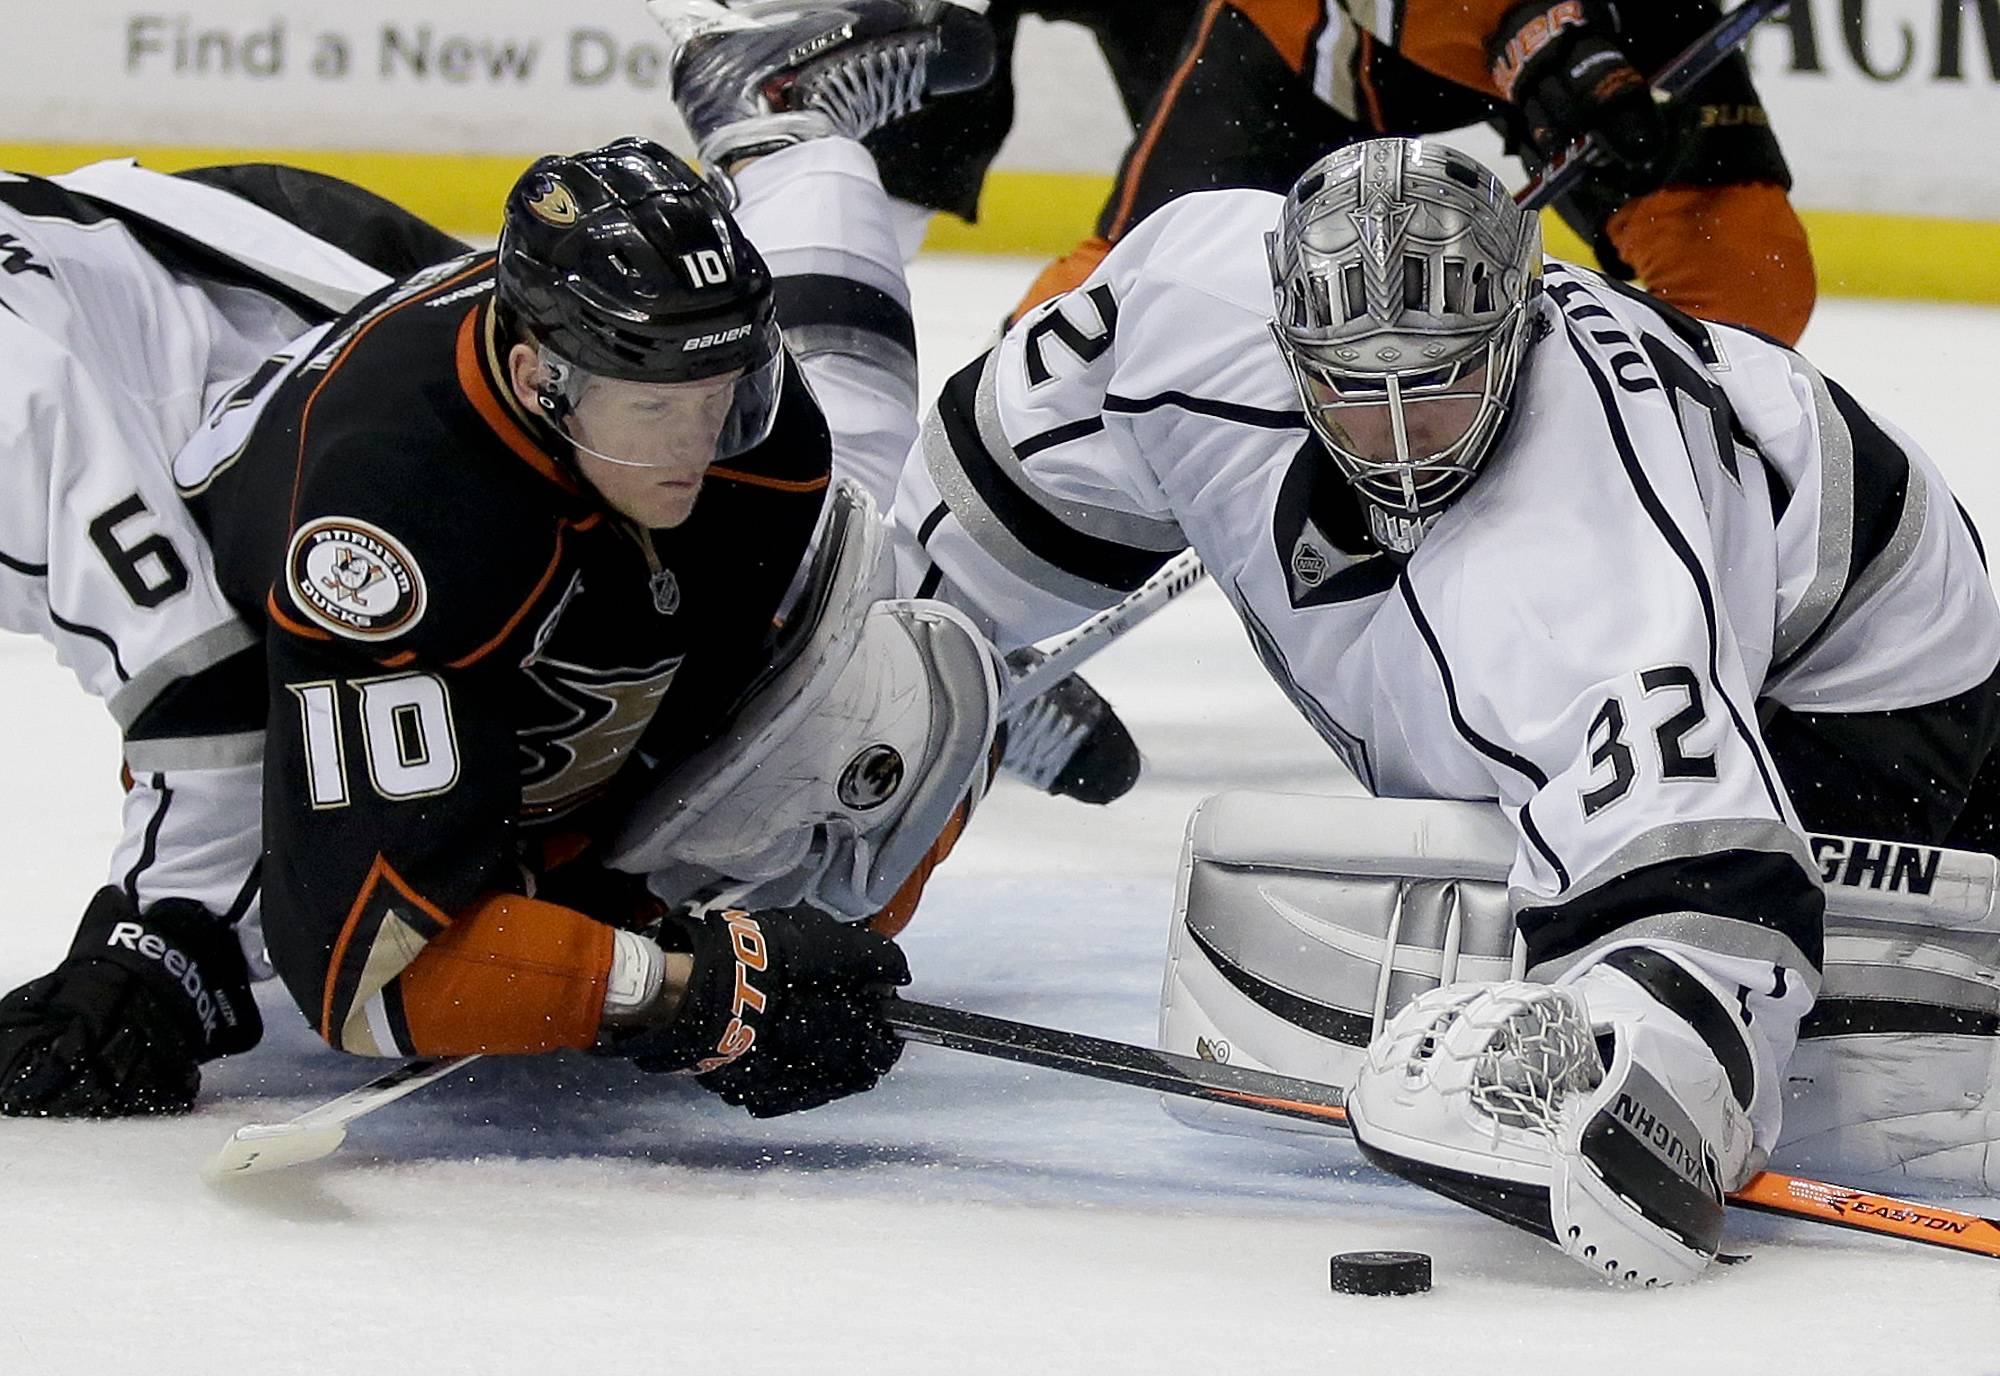 Los Angeles Kings goalie Jonathan Quick, right, allowed the fewest goals in the NHL regular season, and he was exceptional in two Game 7 contests for the Kings.